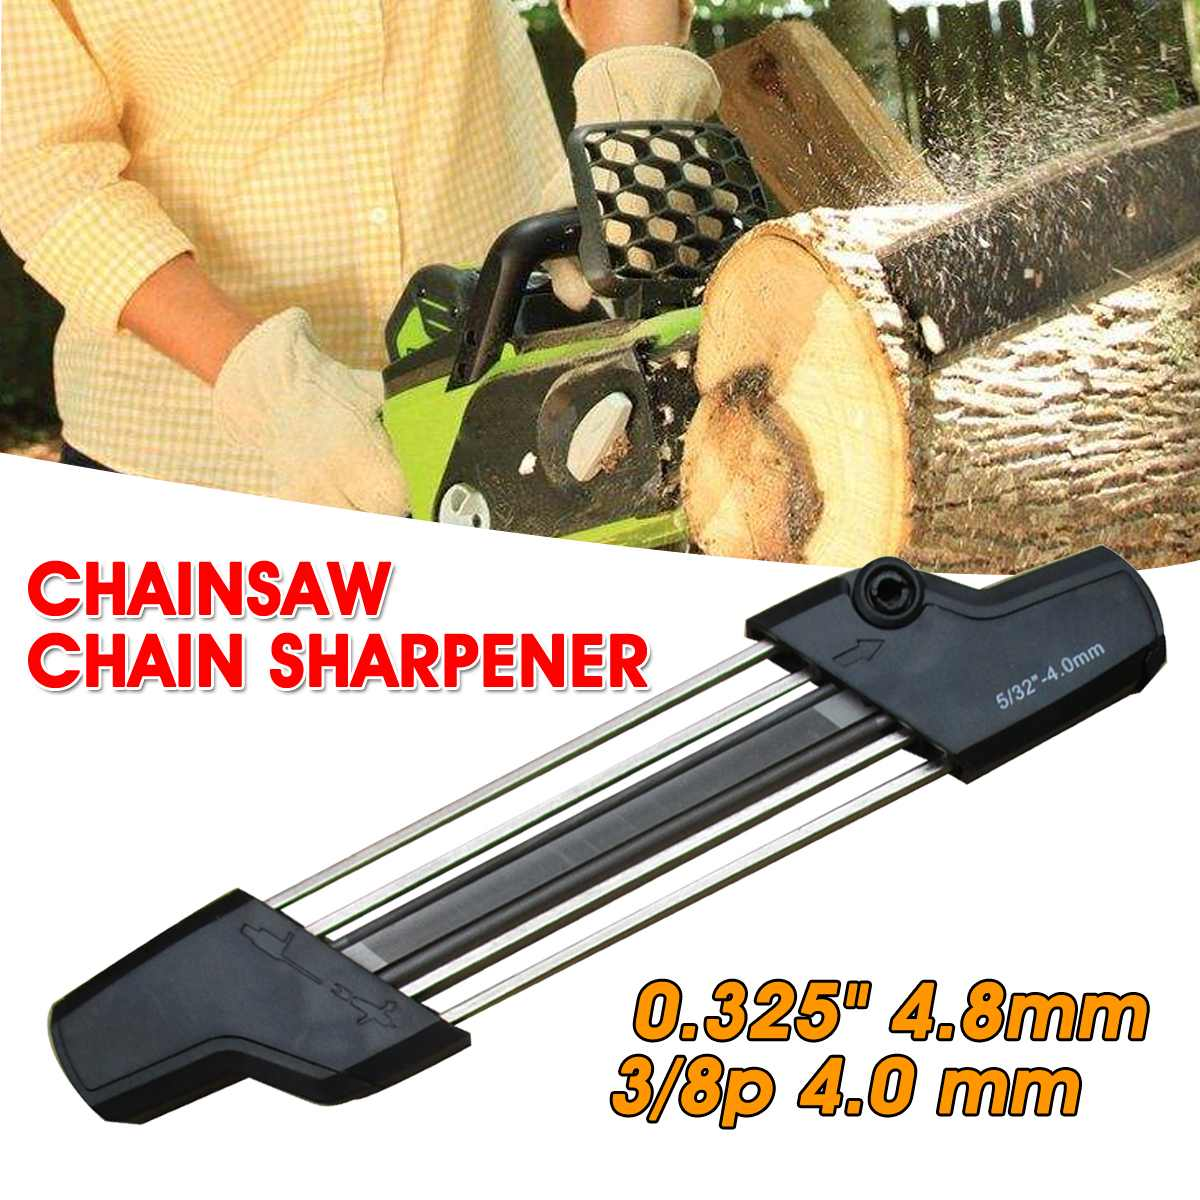 2 IN 1 Chainsaw Chain Easy File Sharpener 3/8 5.2mm 13/64 & 325 4.8mm 3/16 & 4.0mm Models Chain Whetstone Grinding Power Tools